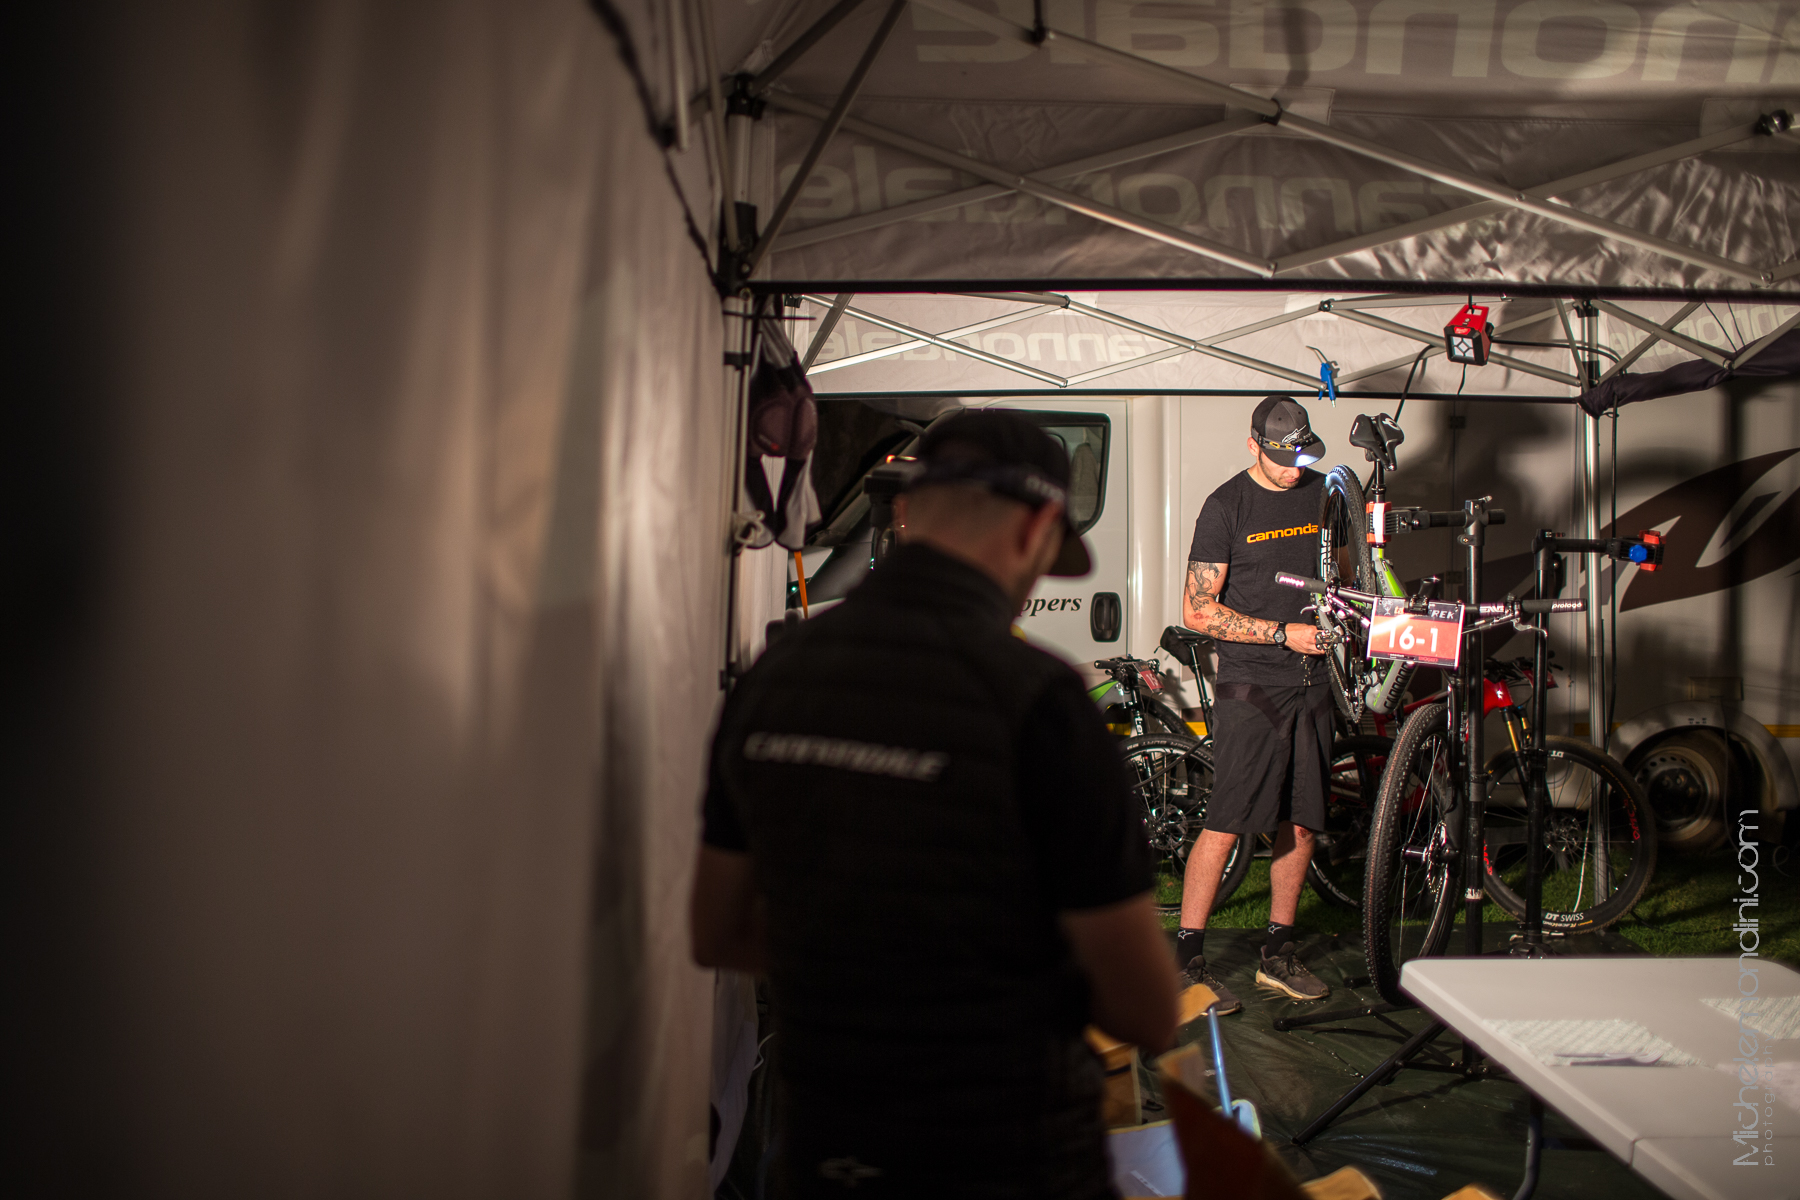 Ande is properly busy to get all the bikes ready for the race - Prince Alfred Hamlet - South Africa - Ph: Michele Mondini